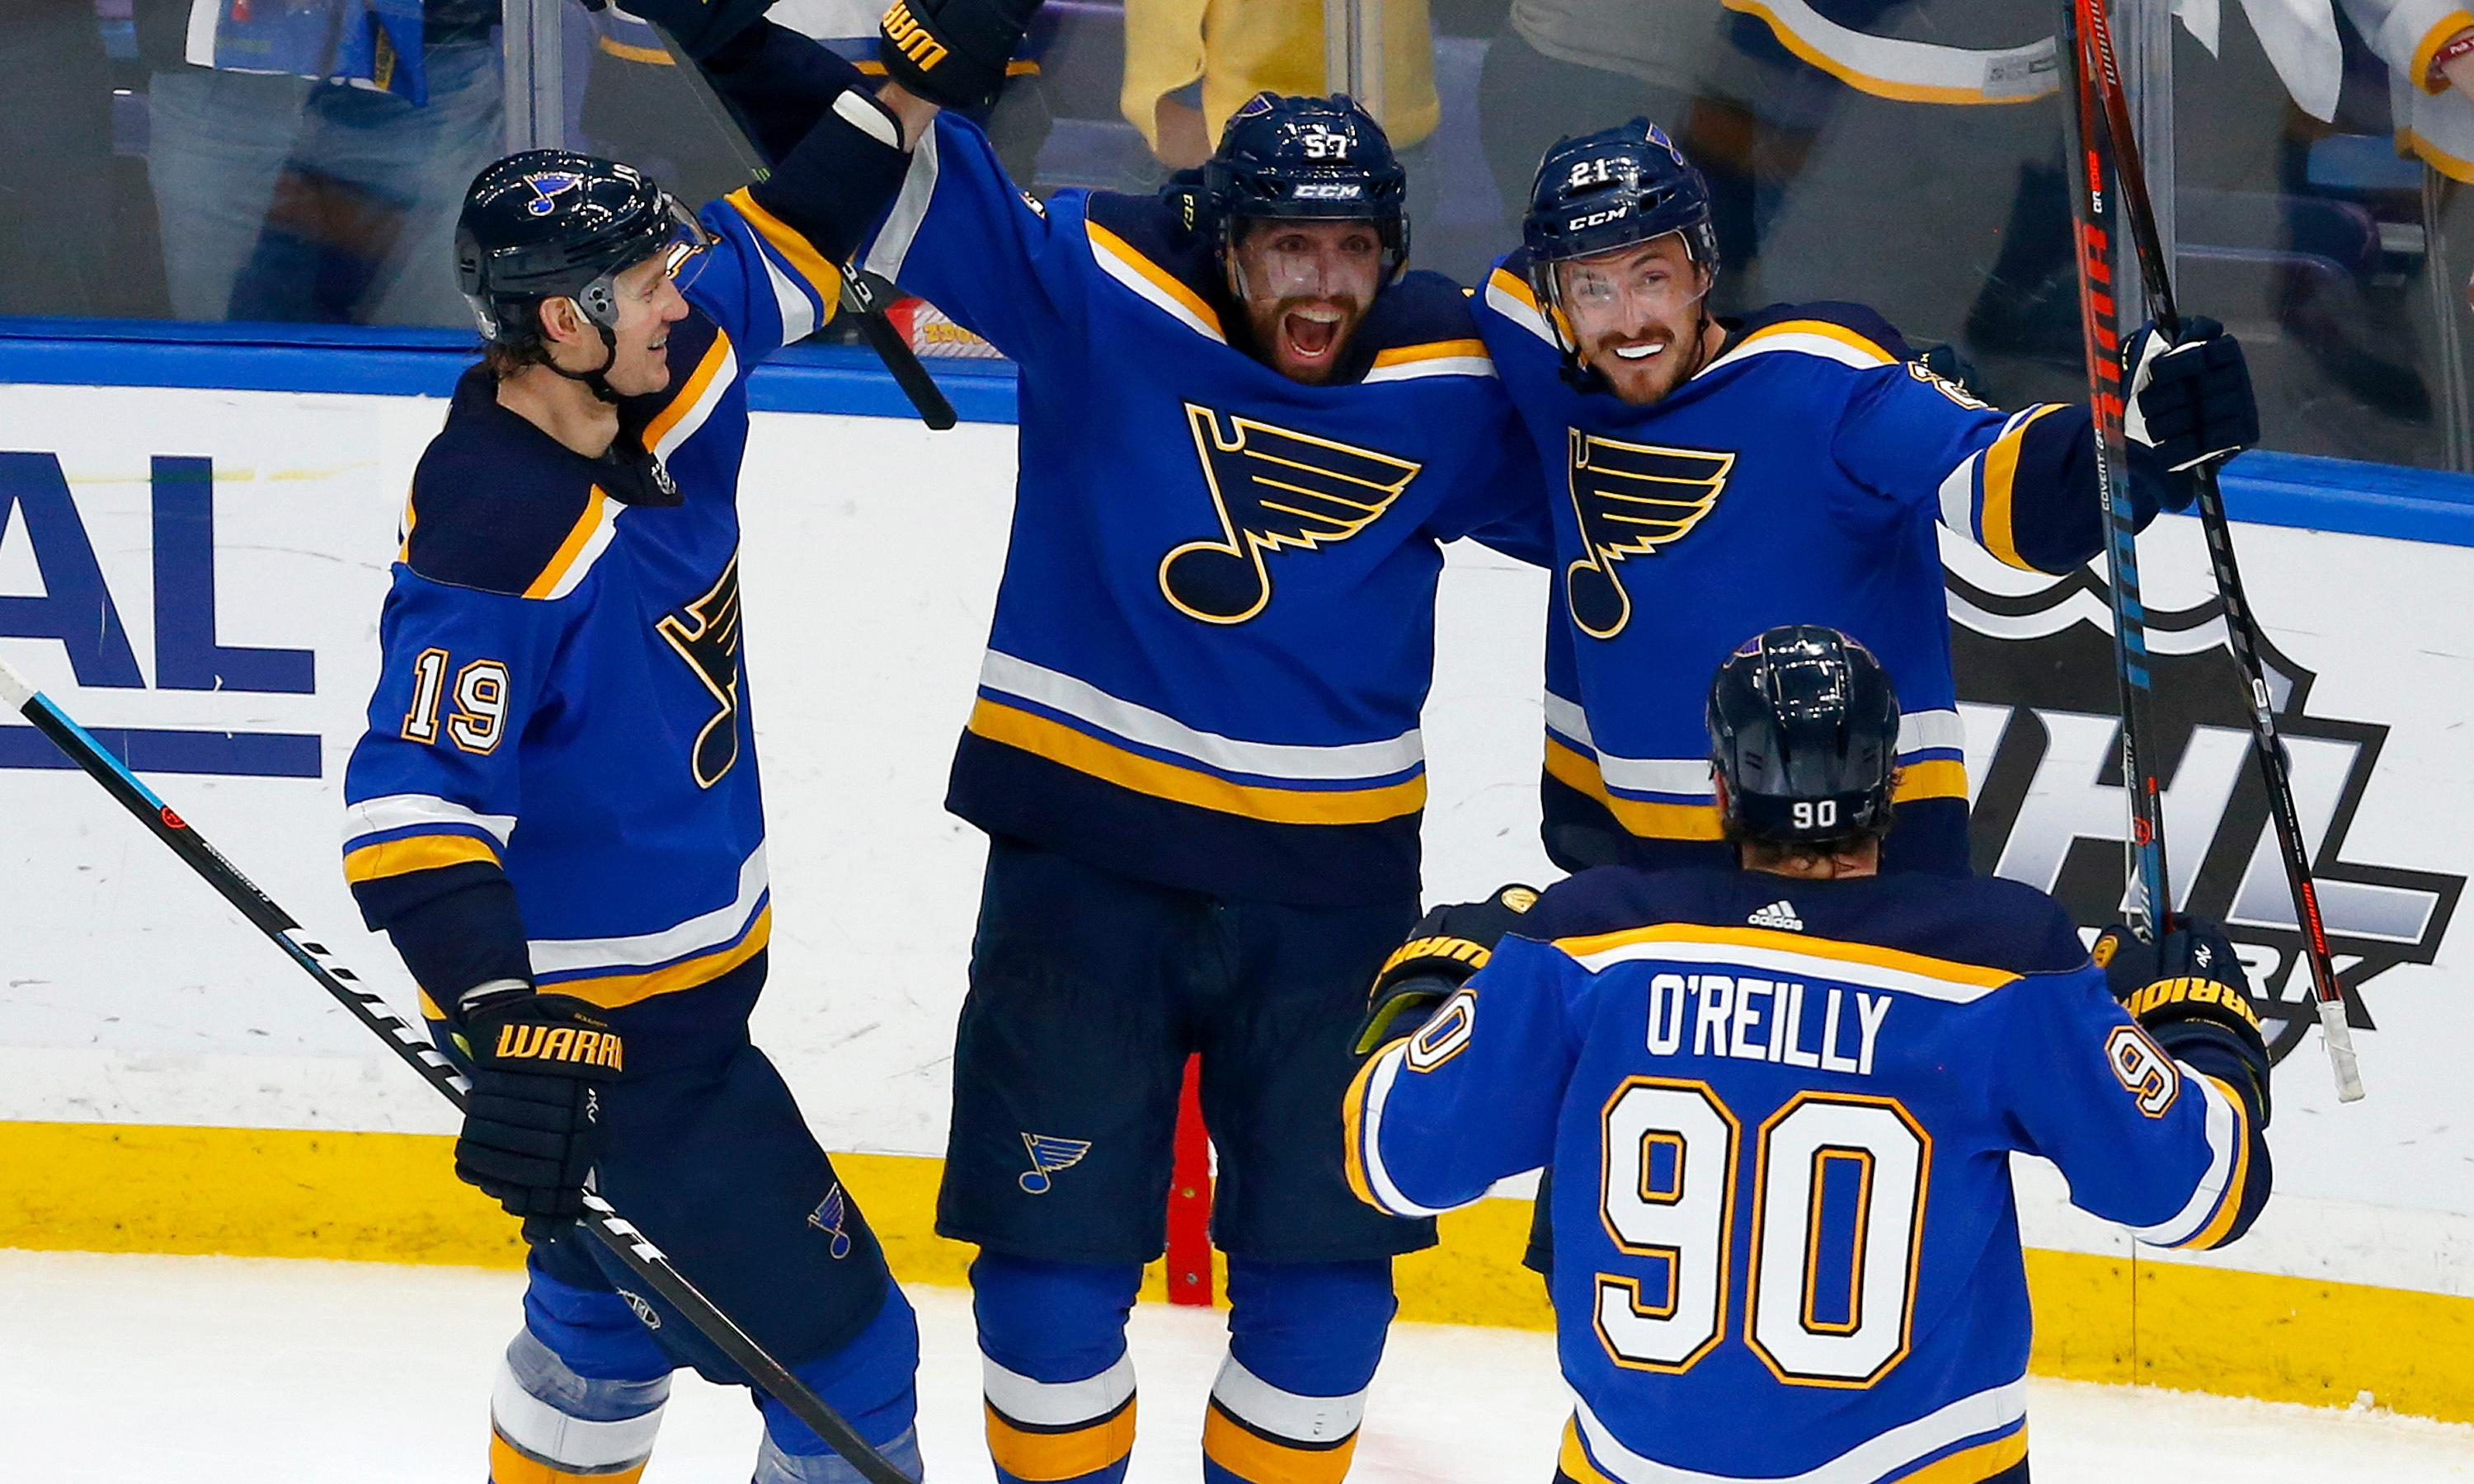 St Louis Blues make Stanley Cup final for first time in 49 years